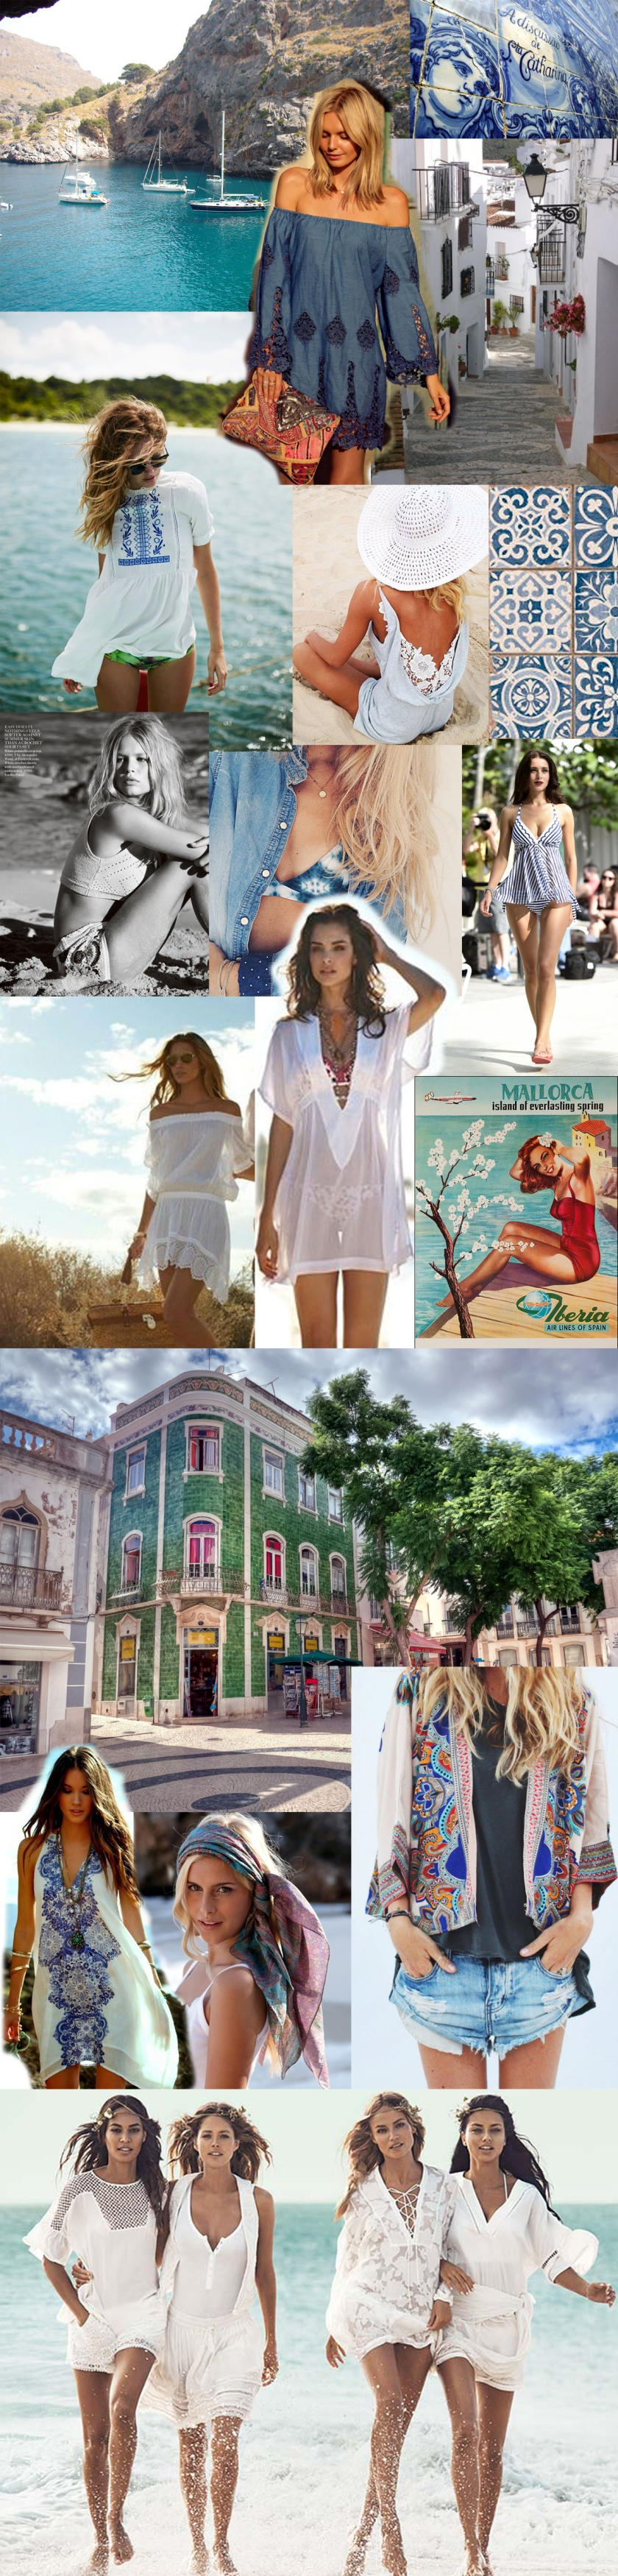 Labellecrush-summer whites & denim Mallorca moodboard copy